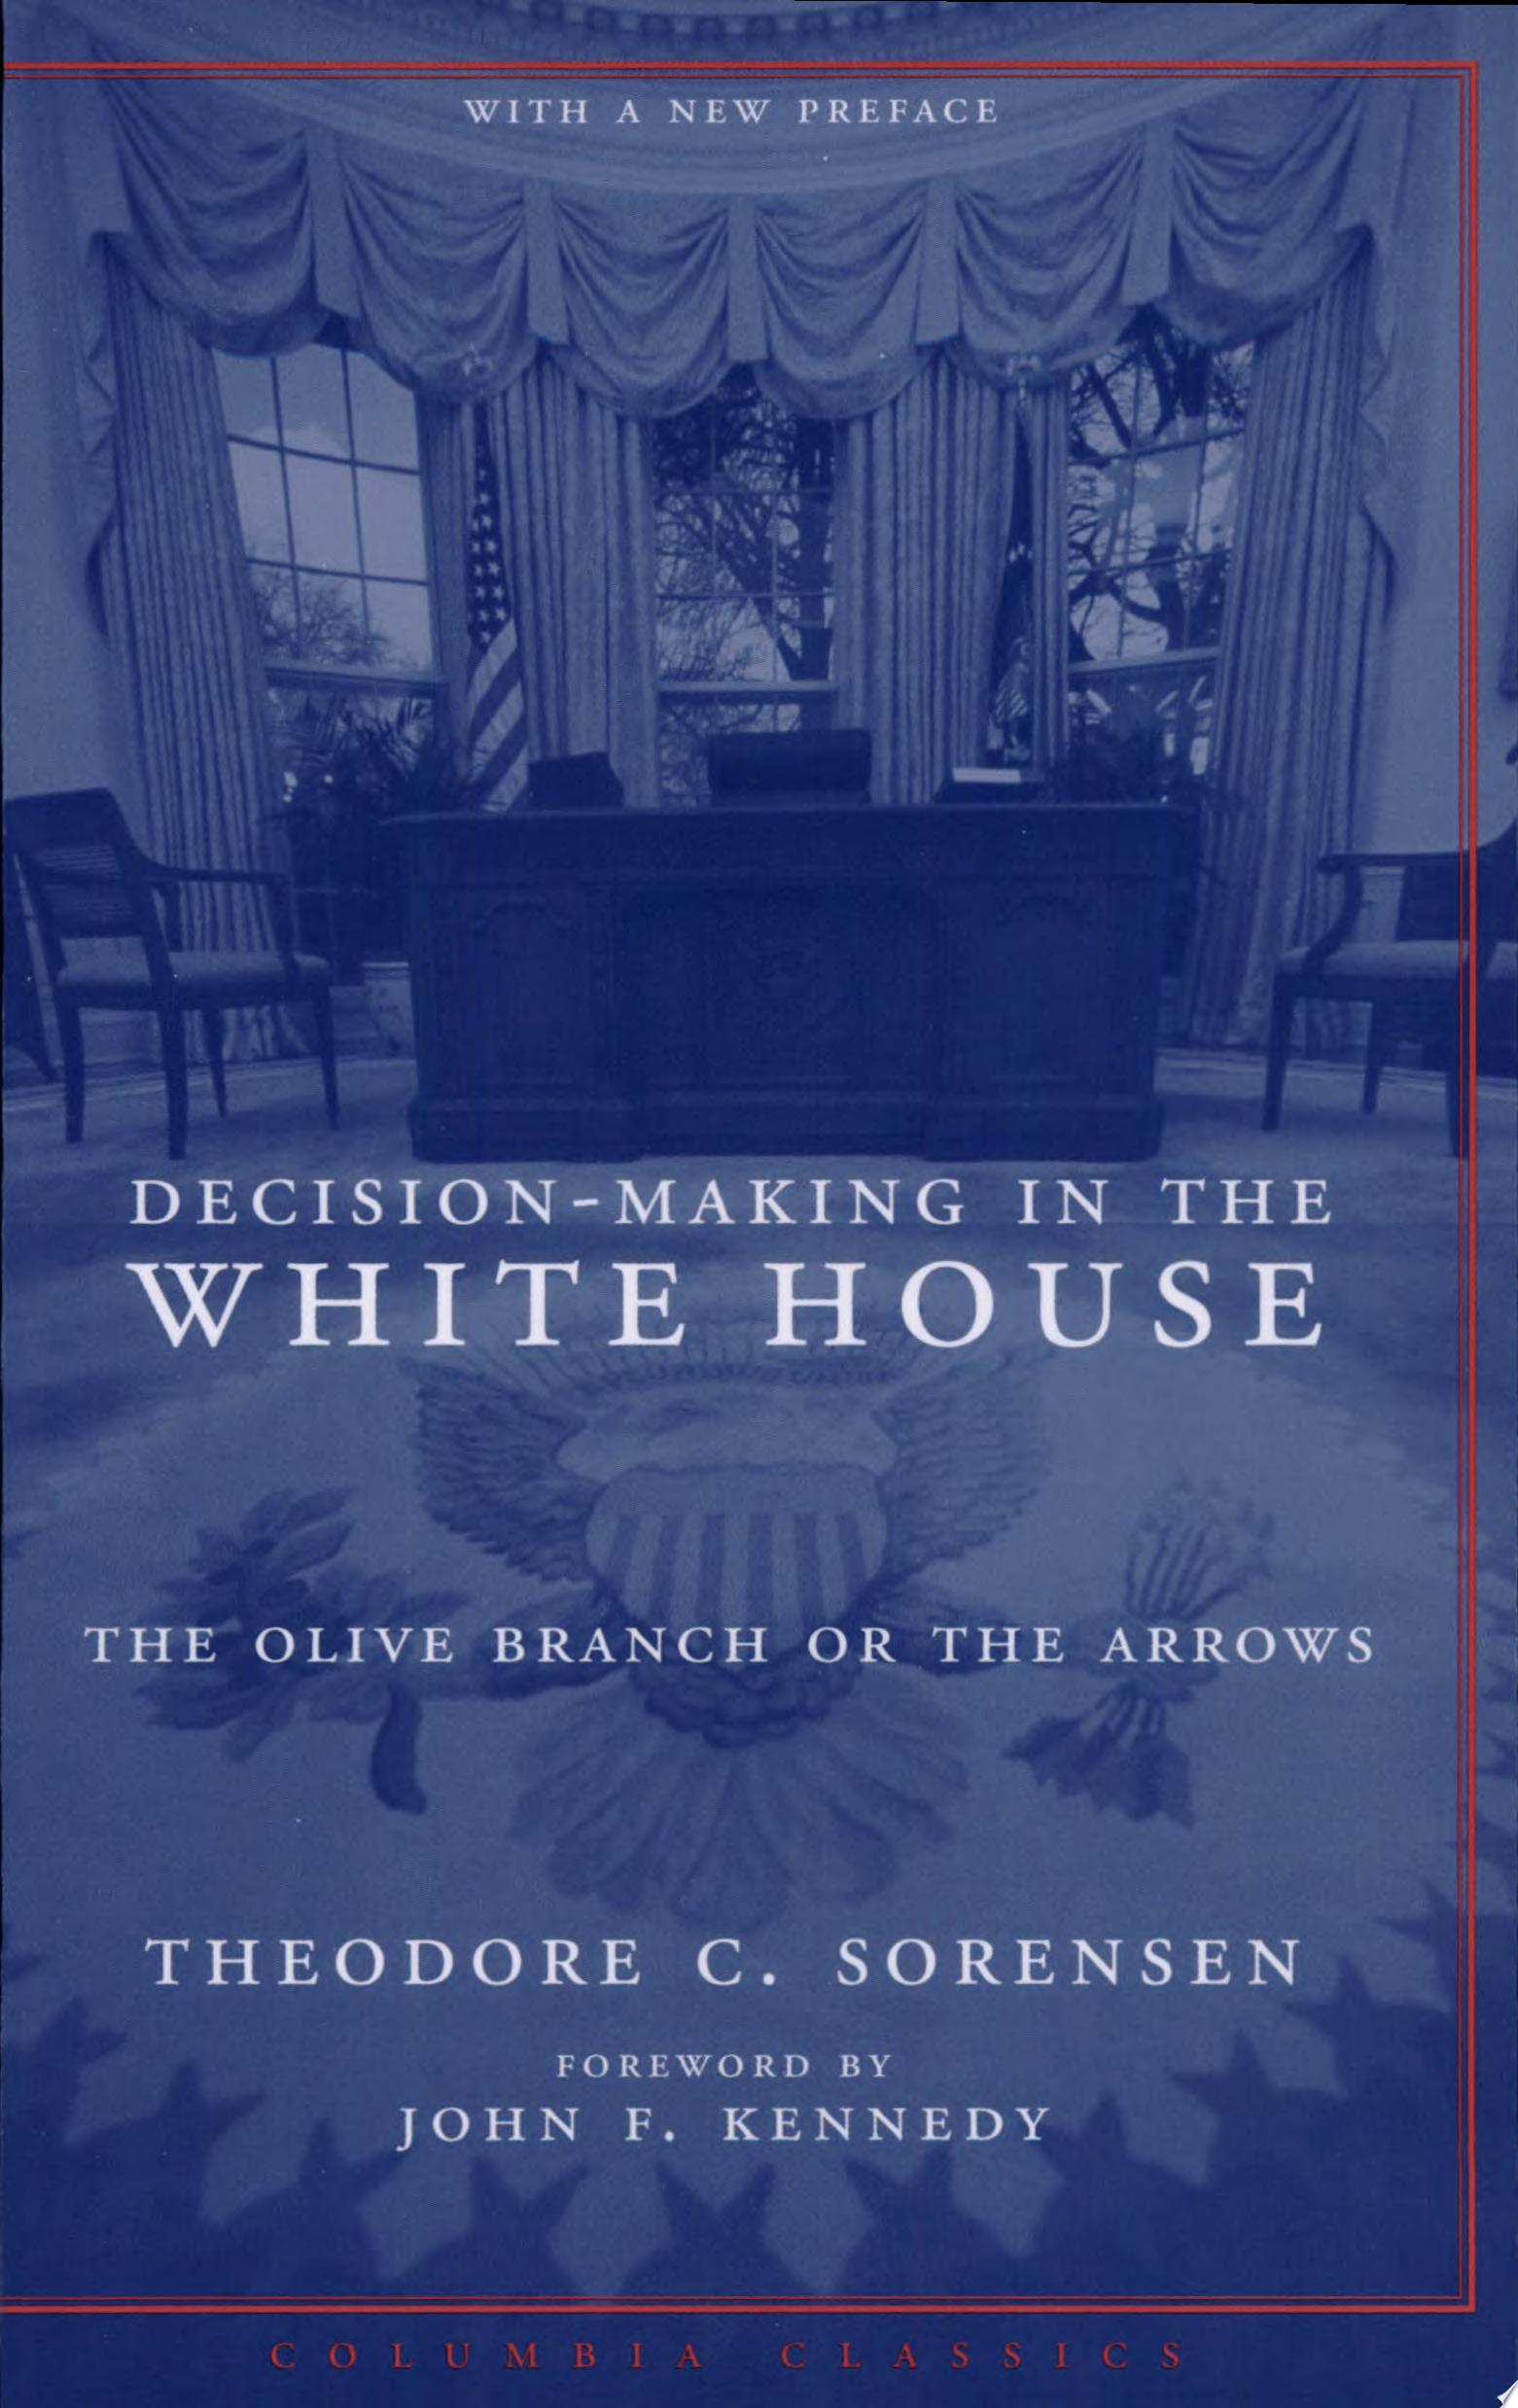 Decision making in the White House